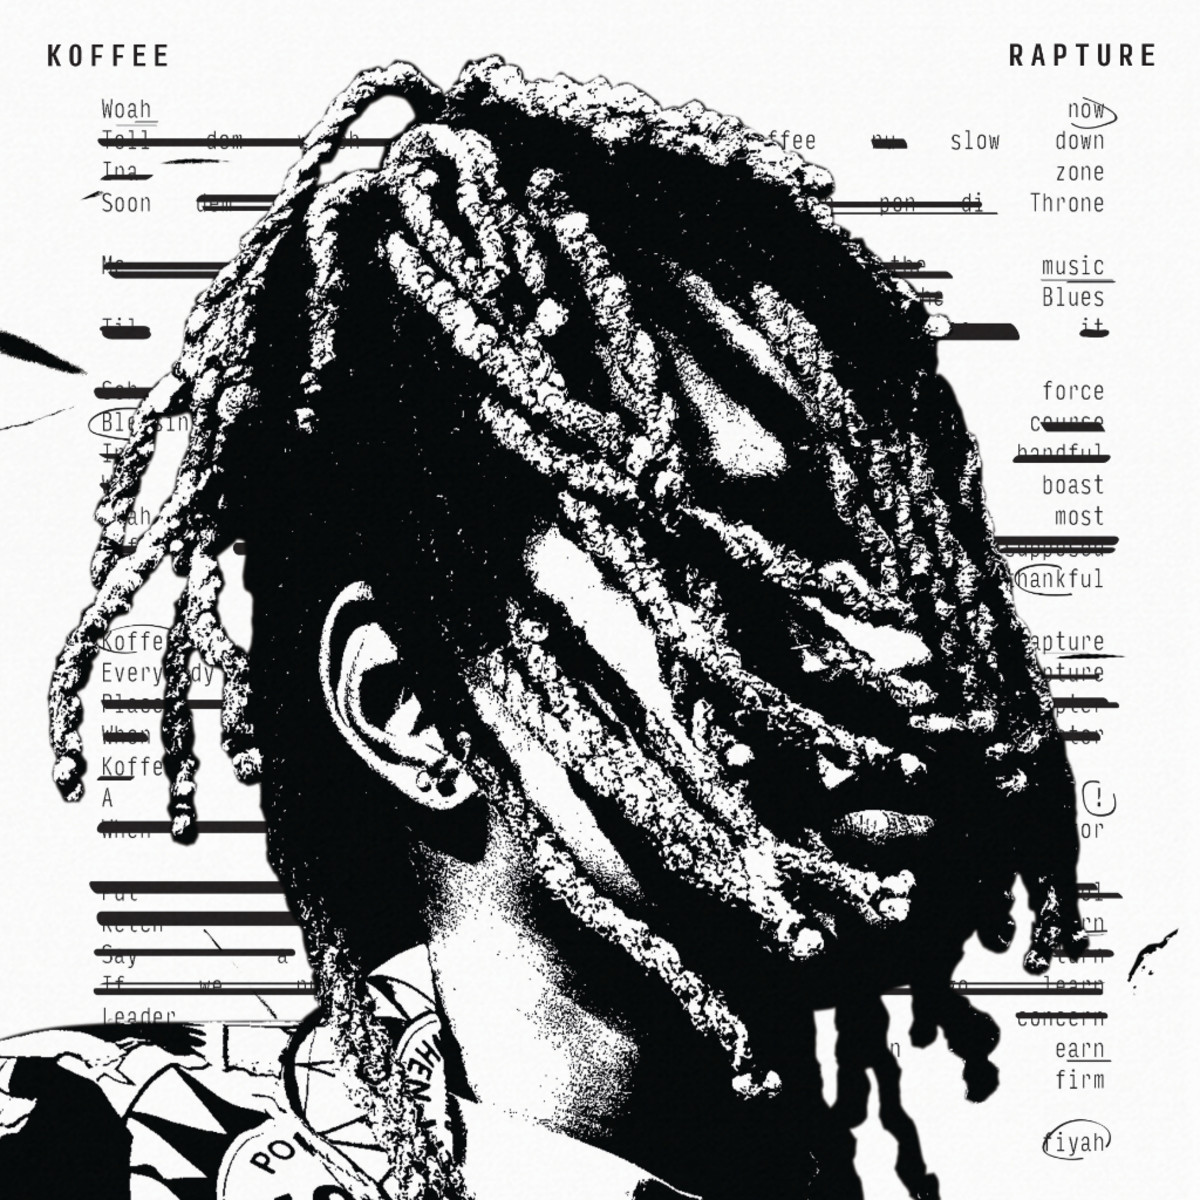 koffee-rapture-album-cover-body